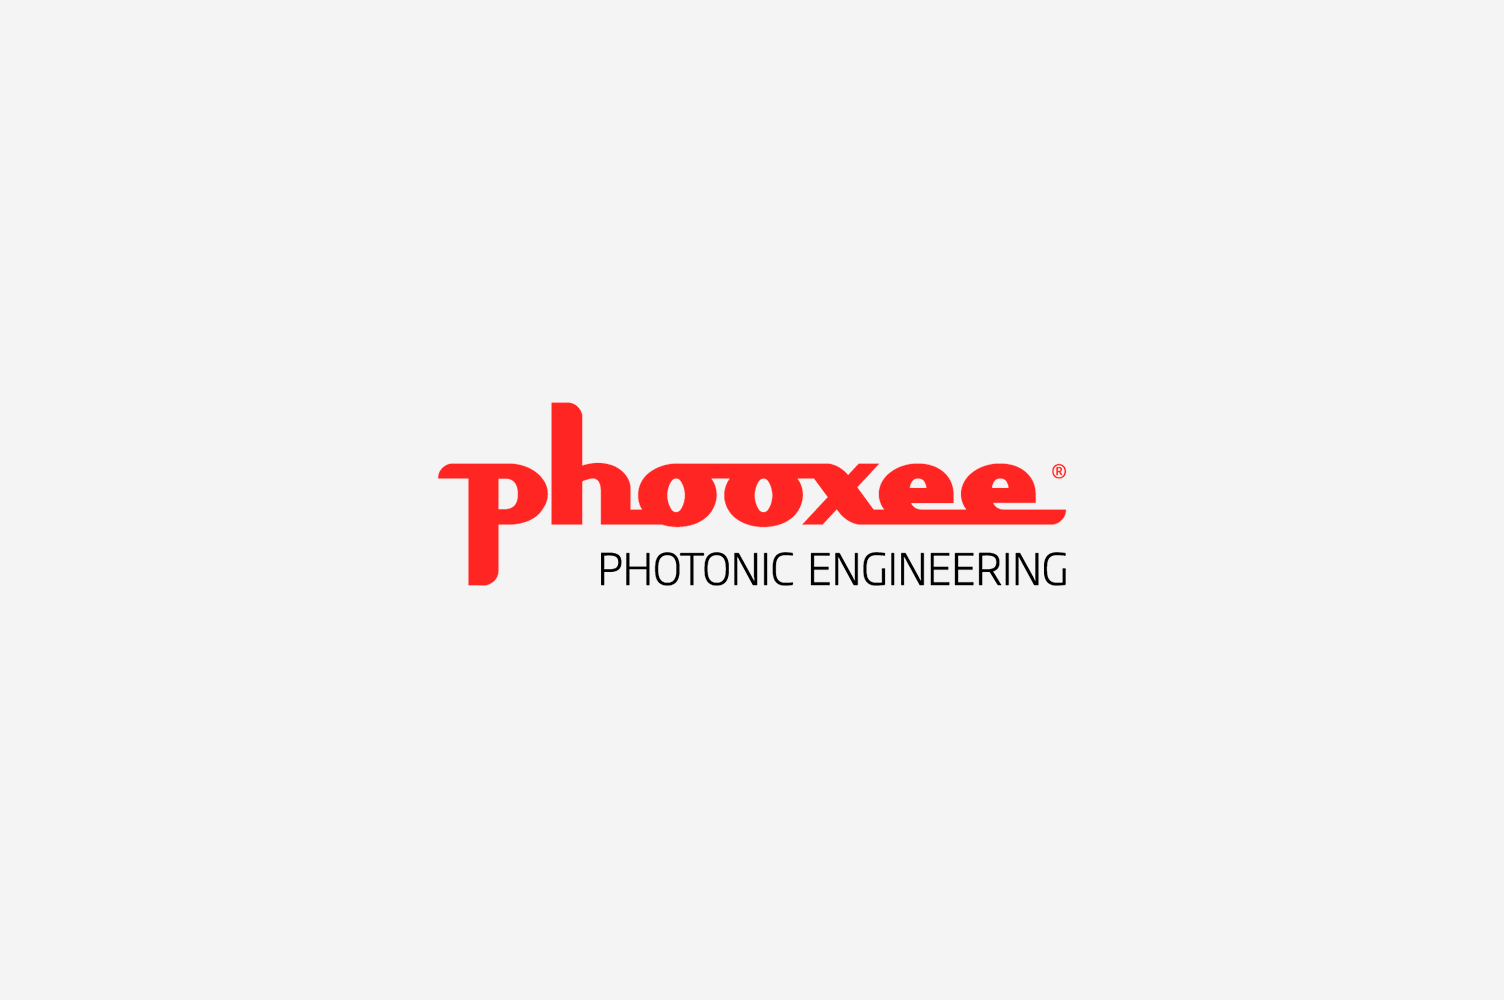 Naming y logotipo Phooxee v. A